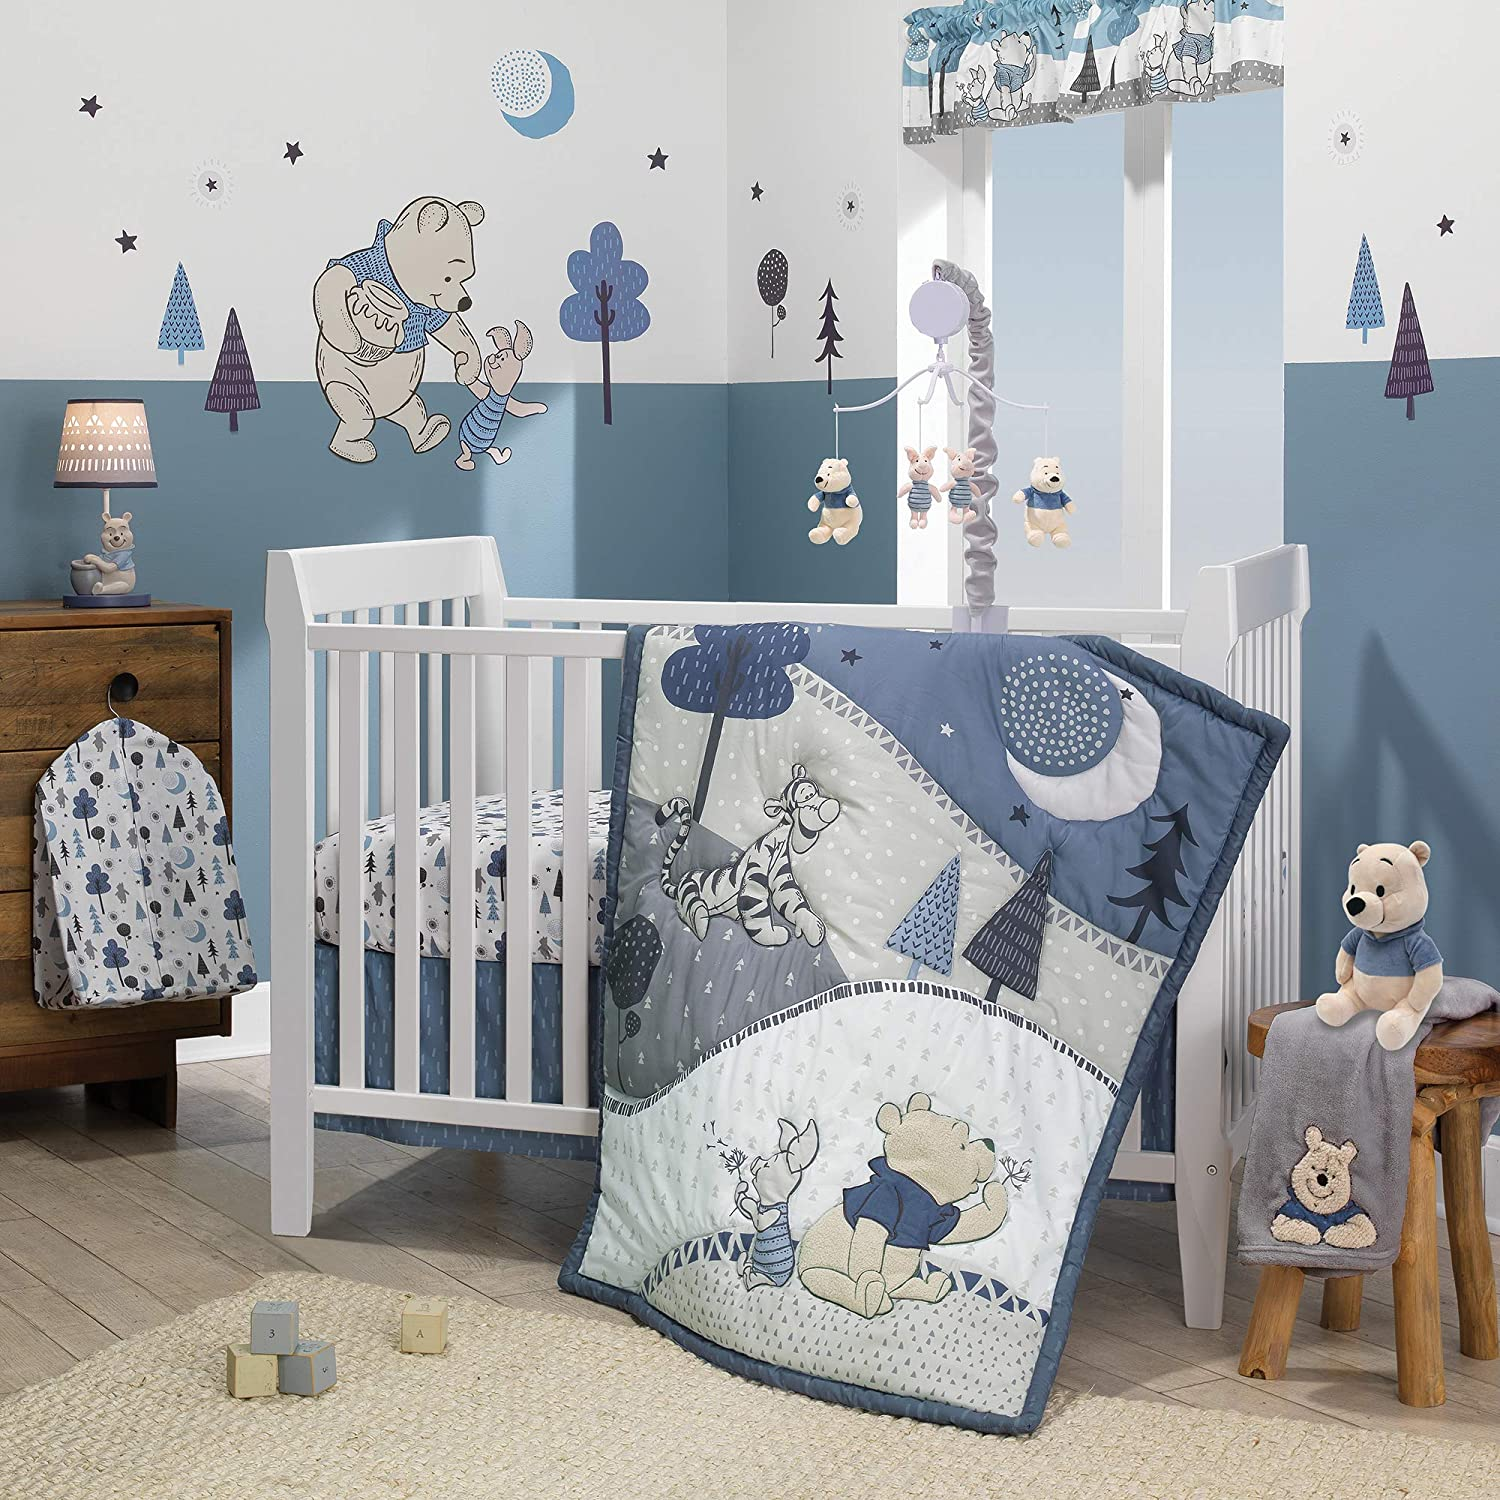 Lambs Ivy Forever Pooh 3Piece Bedding High order Sale Special Price Baby Crib Set Blue